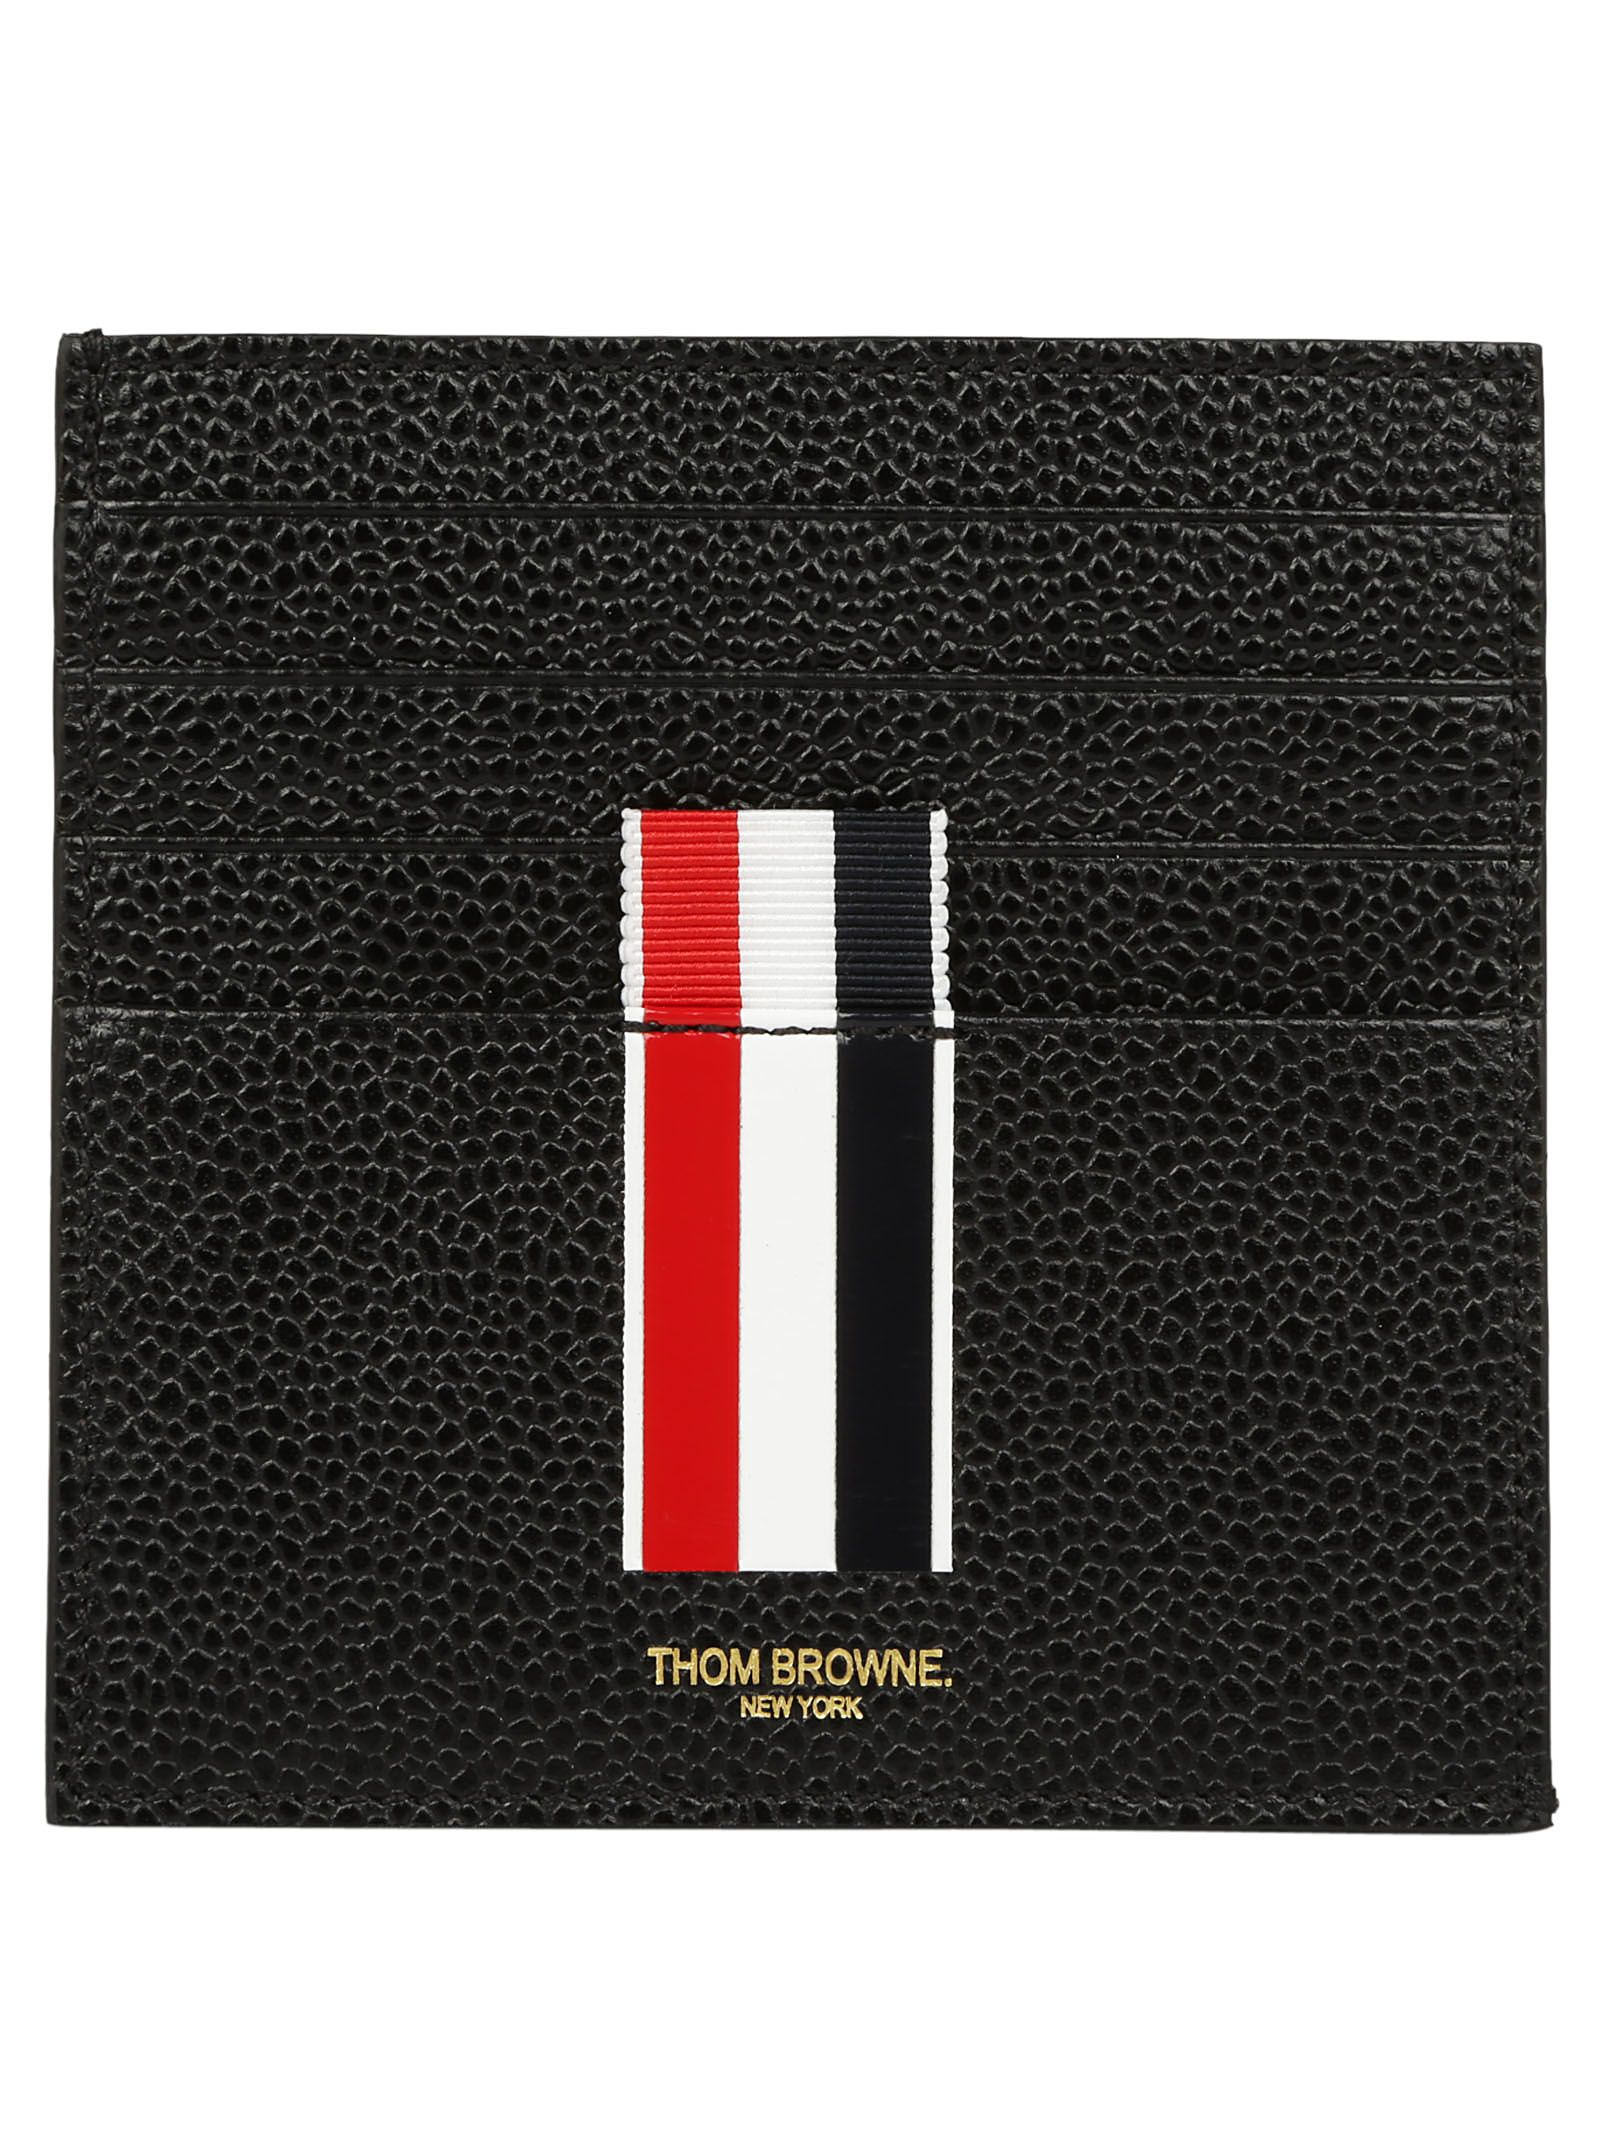 f25b7a460bf Thom Browne Thom Browne Card Holder - Black - 10783367